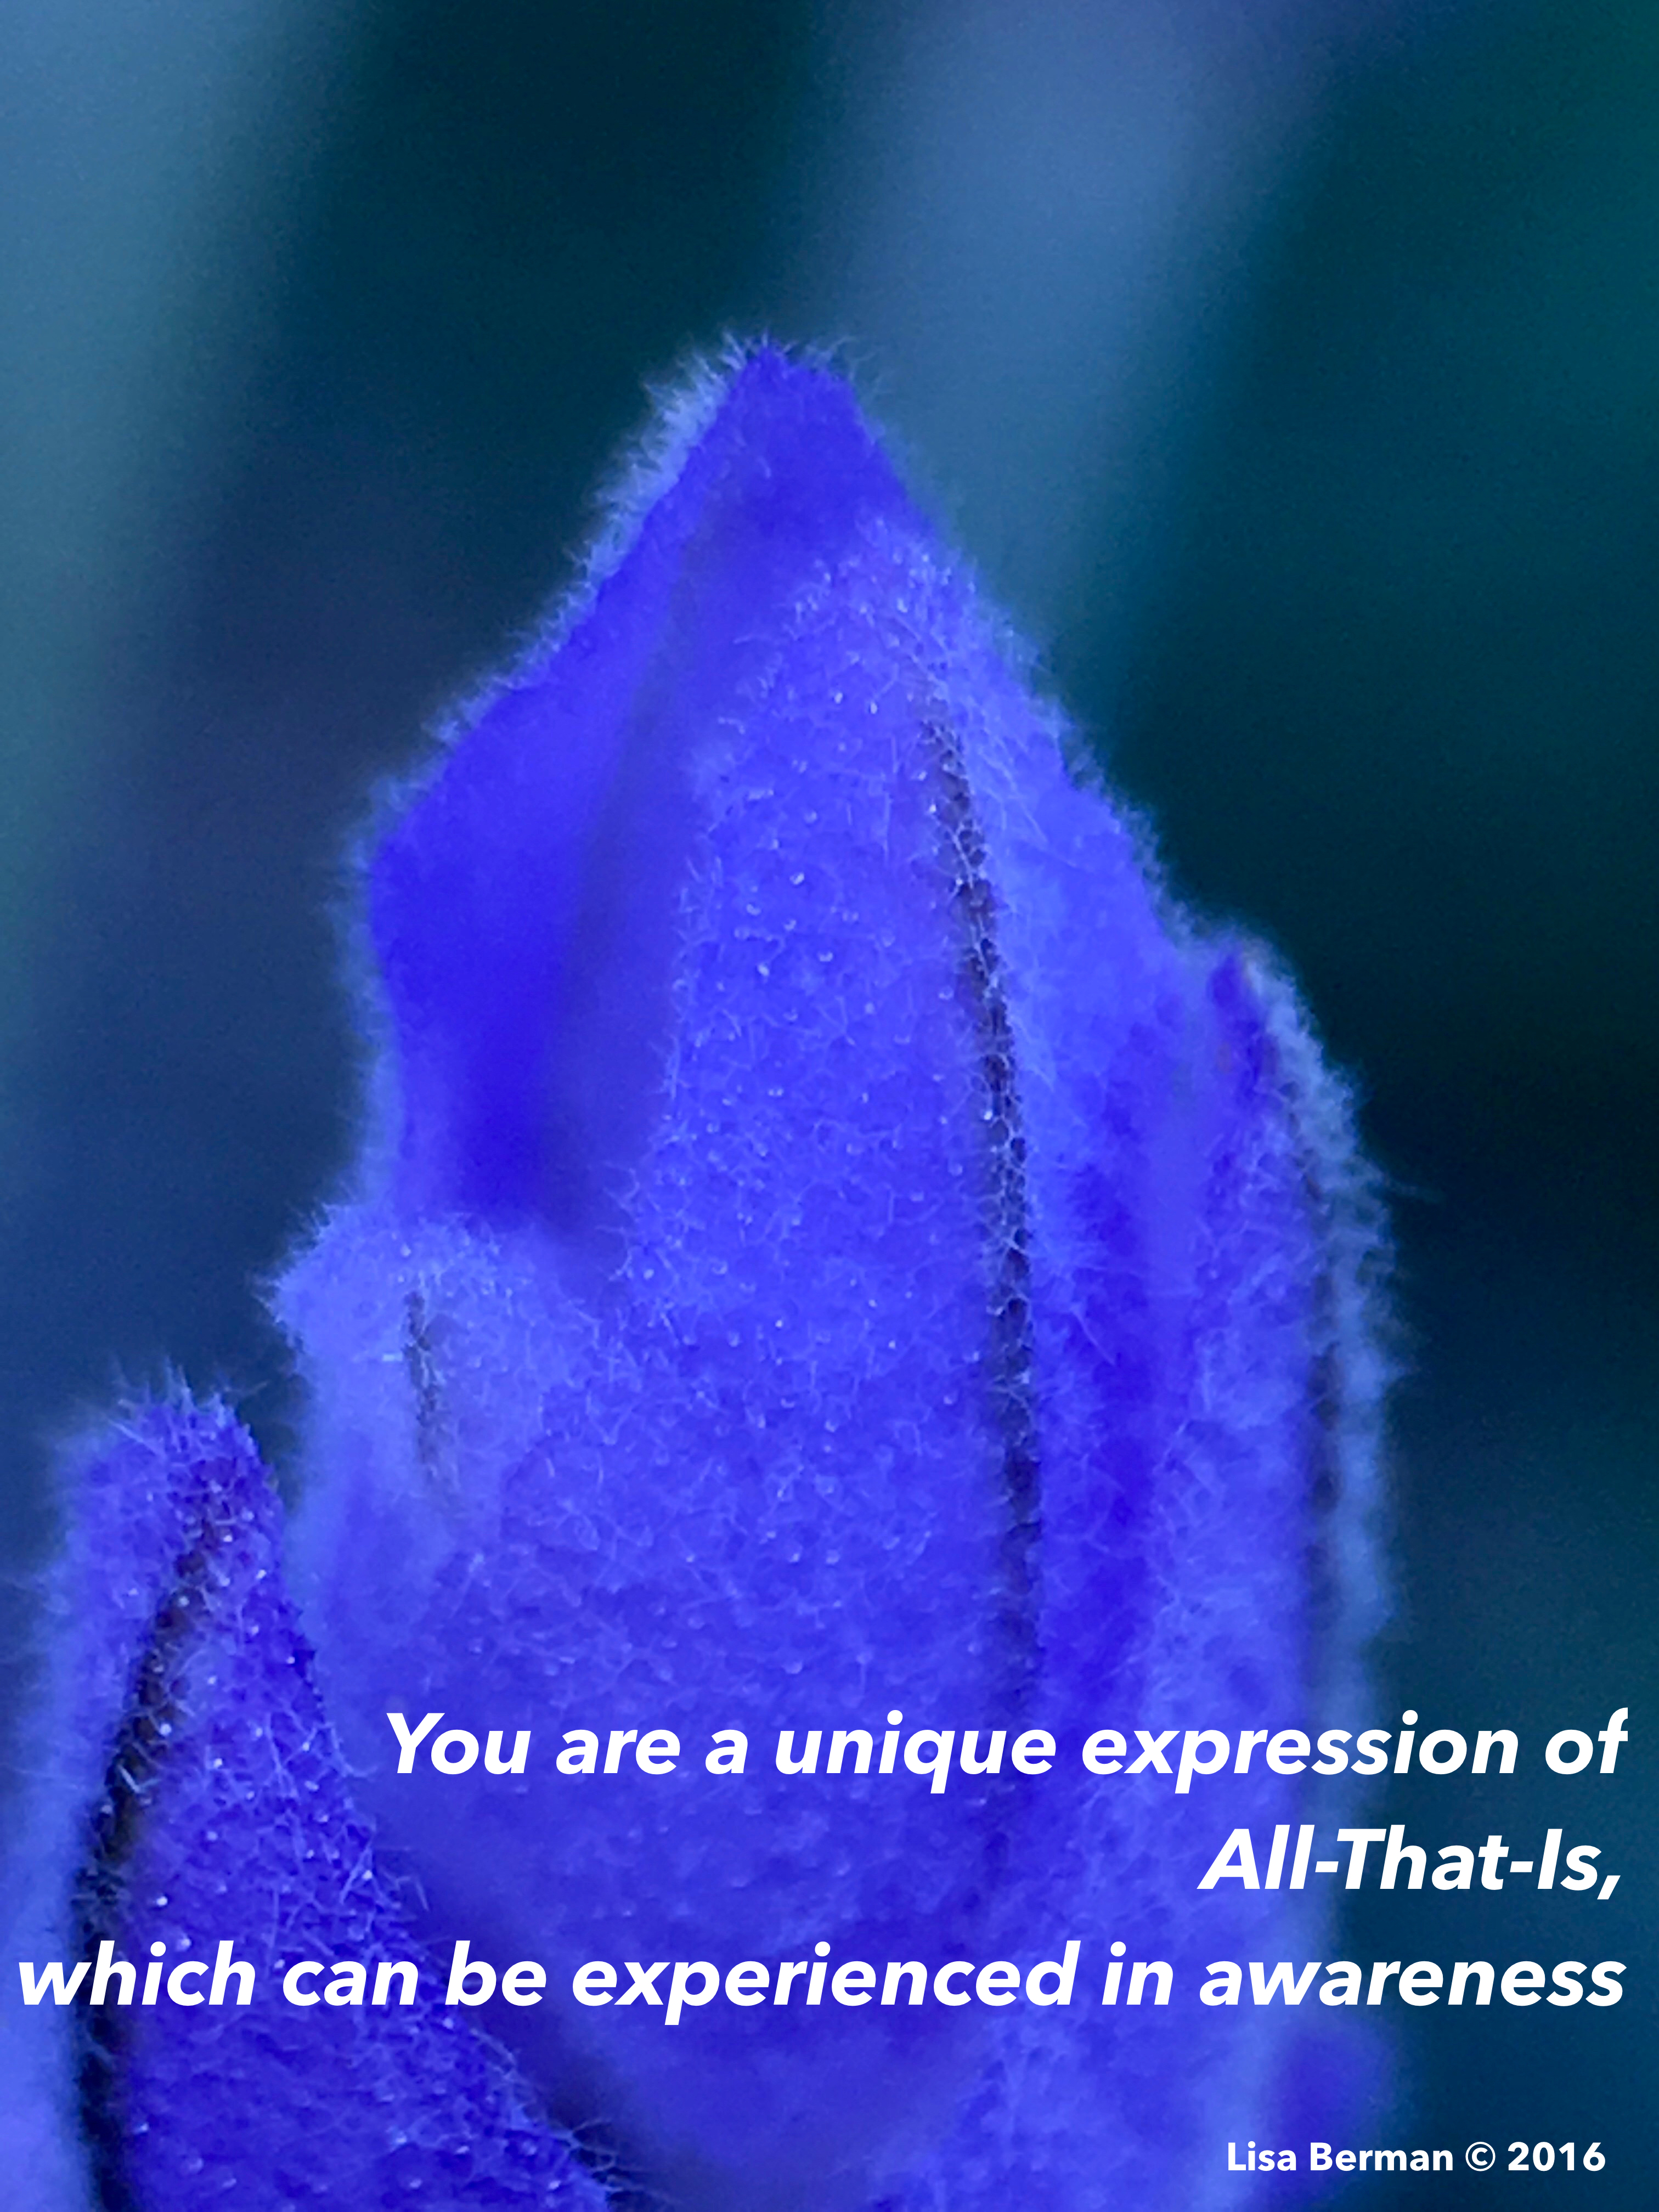 You are a unique expression of All-That-Is, which can be experienced in awareness